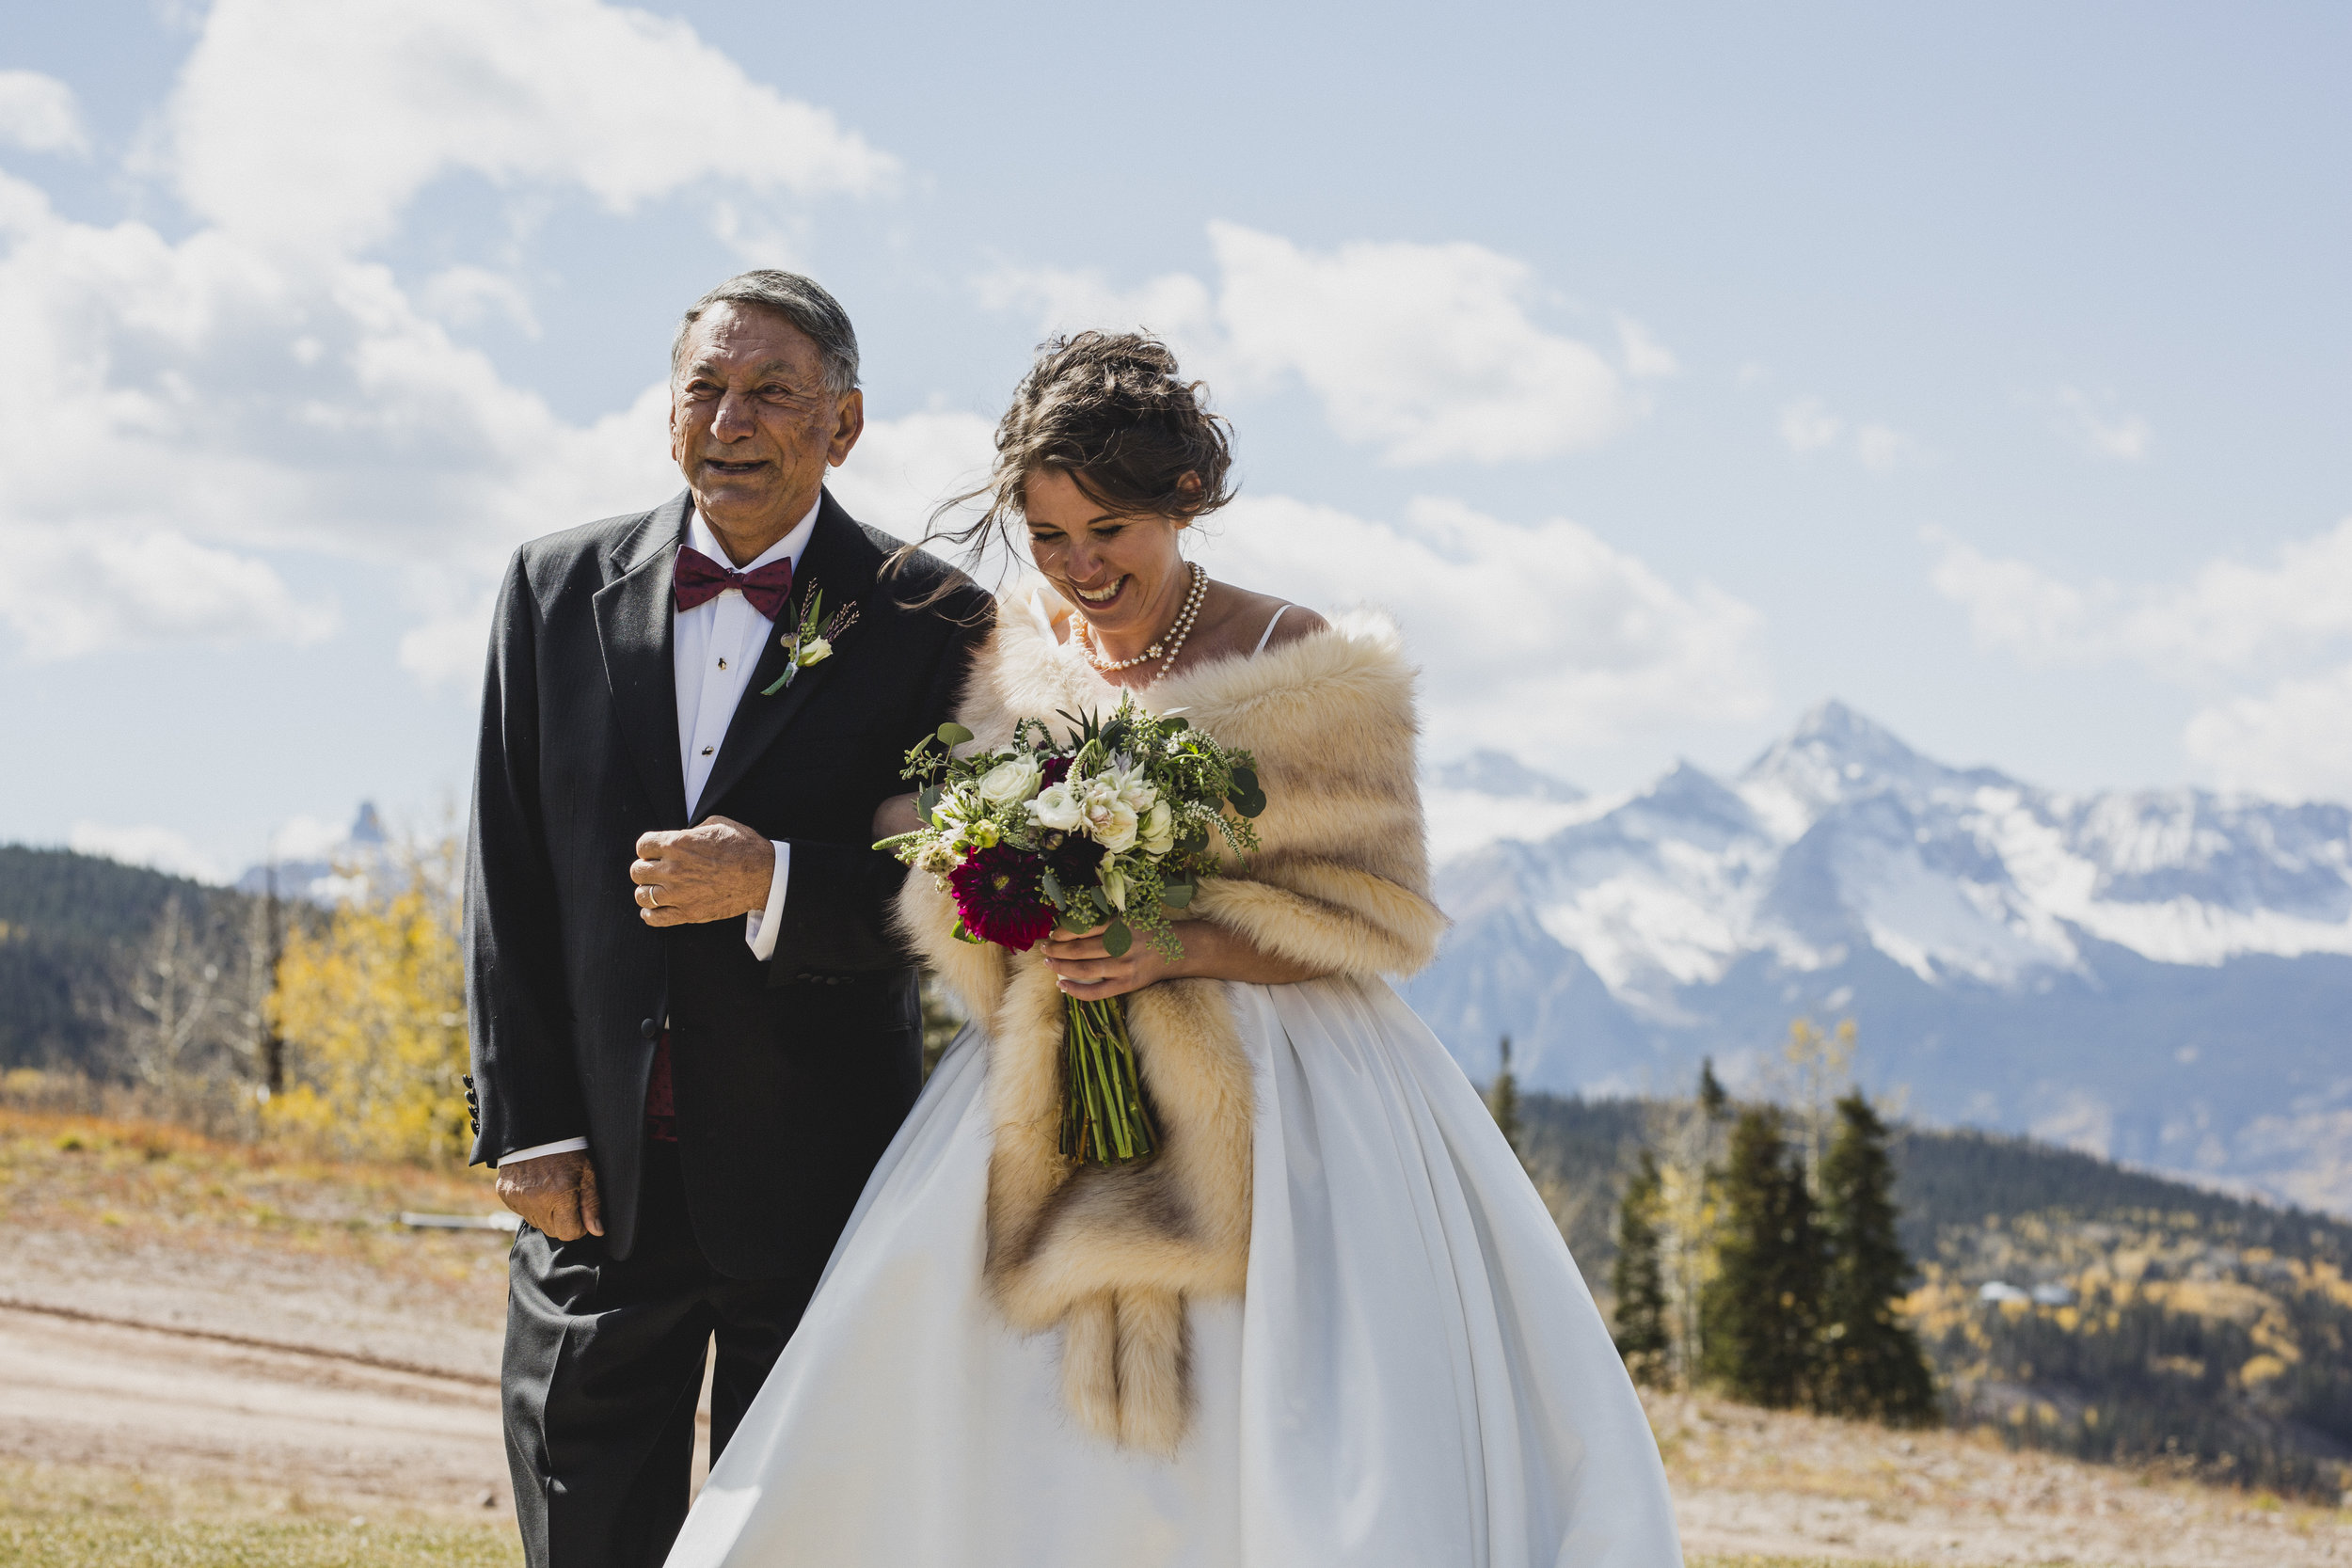 NE-LeahandAshtonphotography-Telluride-Wedding-Photography-9291.jpg